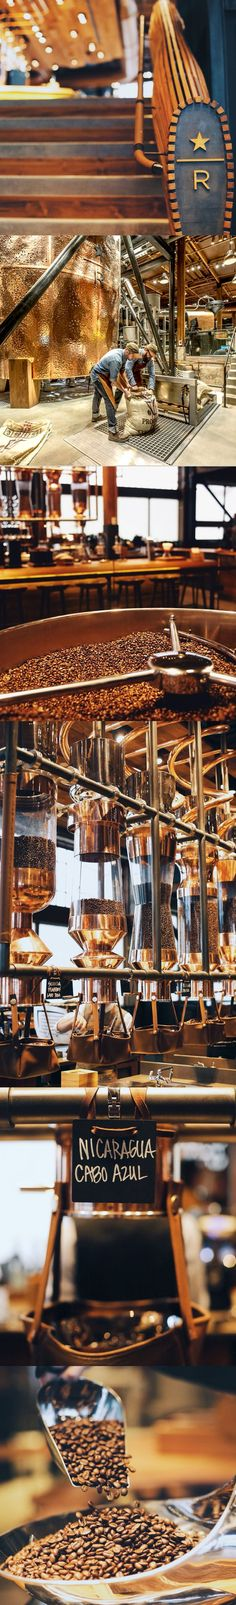 The Starbucks Reserve Roastery and Tasting Room in Seattle's Capitol Hill is dedicated to the craft of roasting, the art of brewing, and exploration of taste. It represents everything we love about coffee-under one roof.